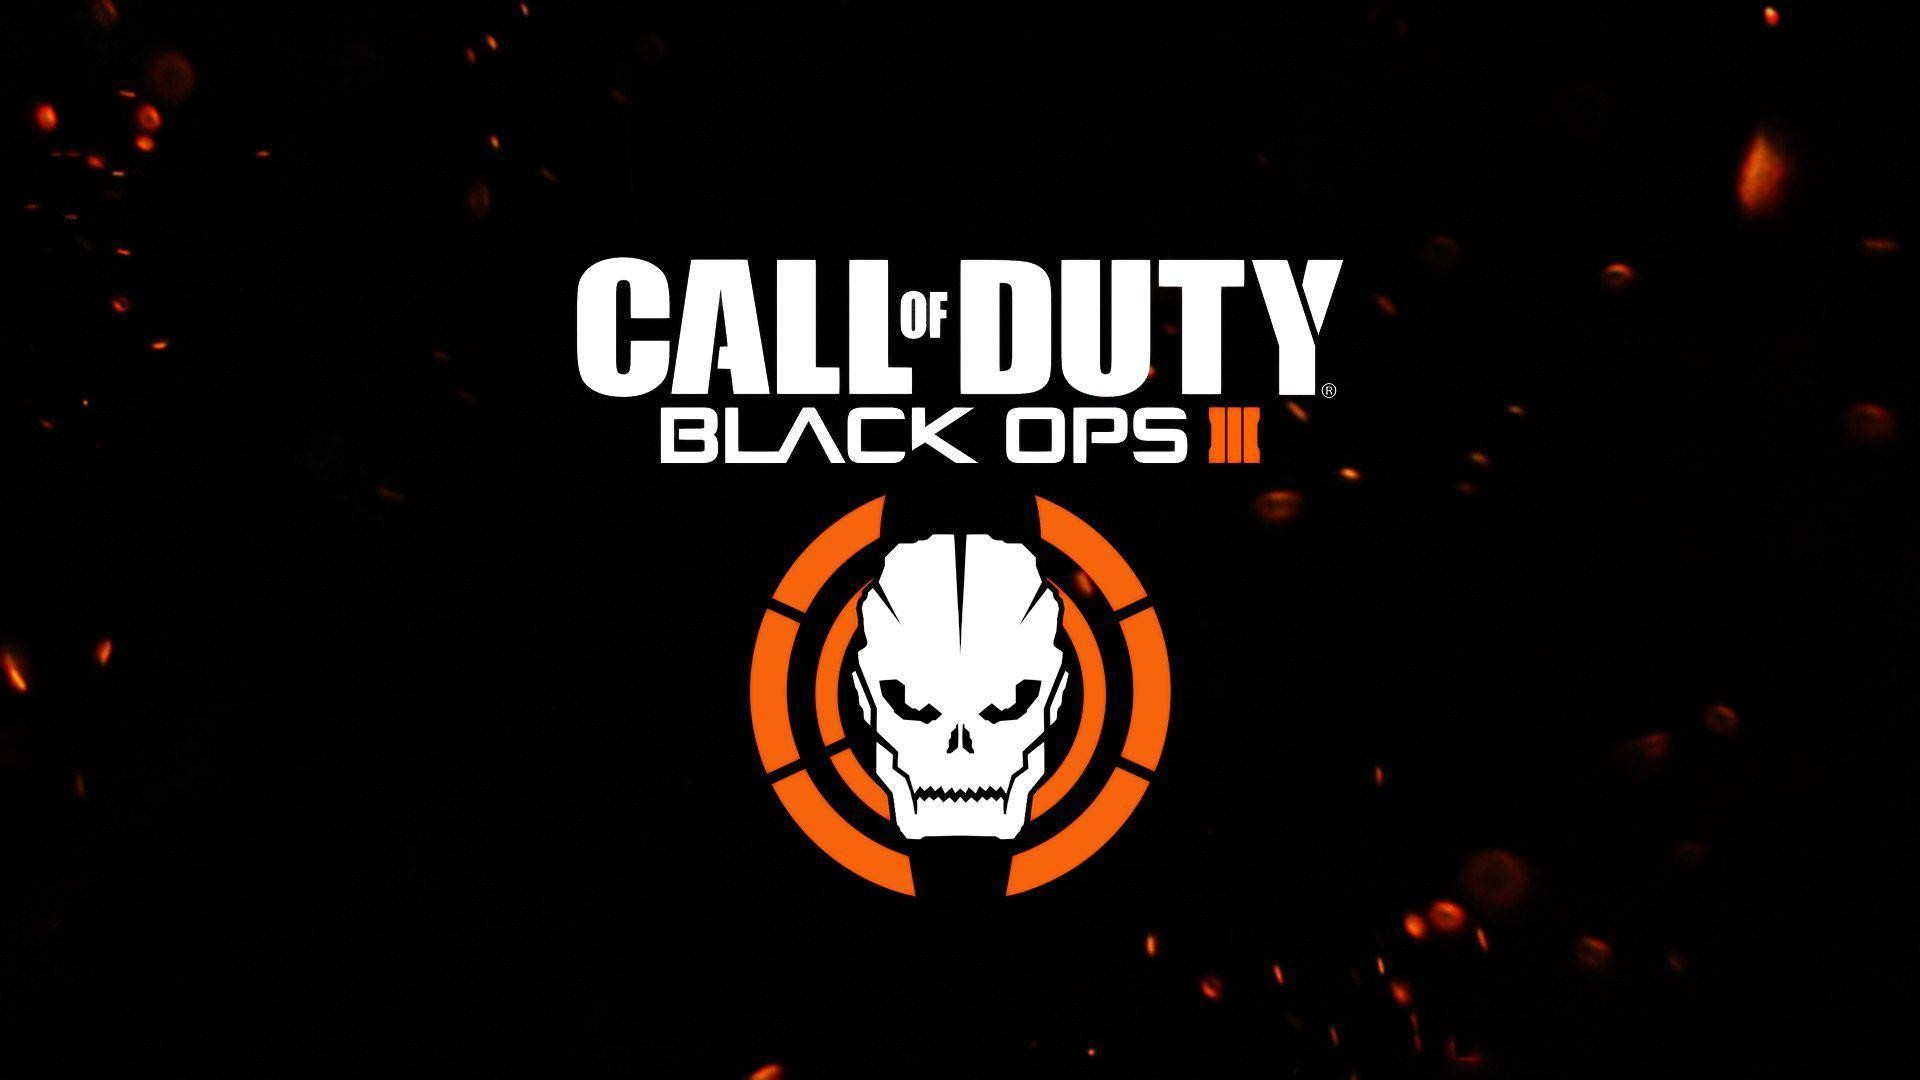 Call of Duty Black Ops 3 wallpaper 15